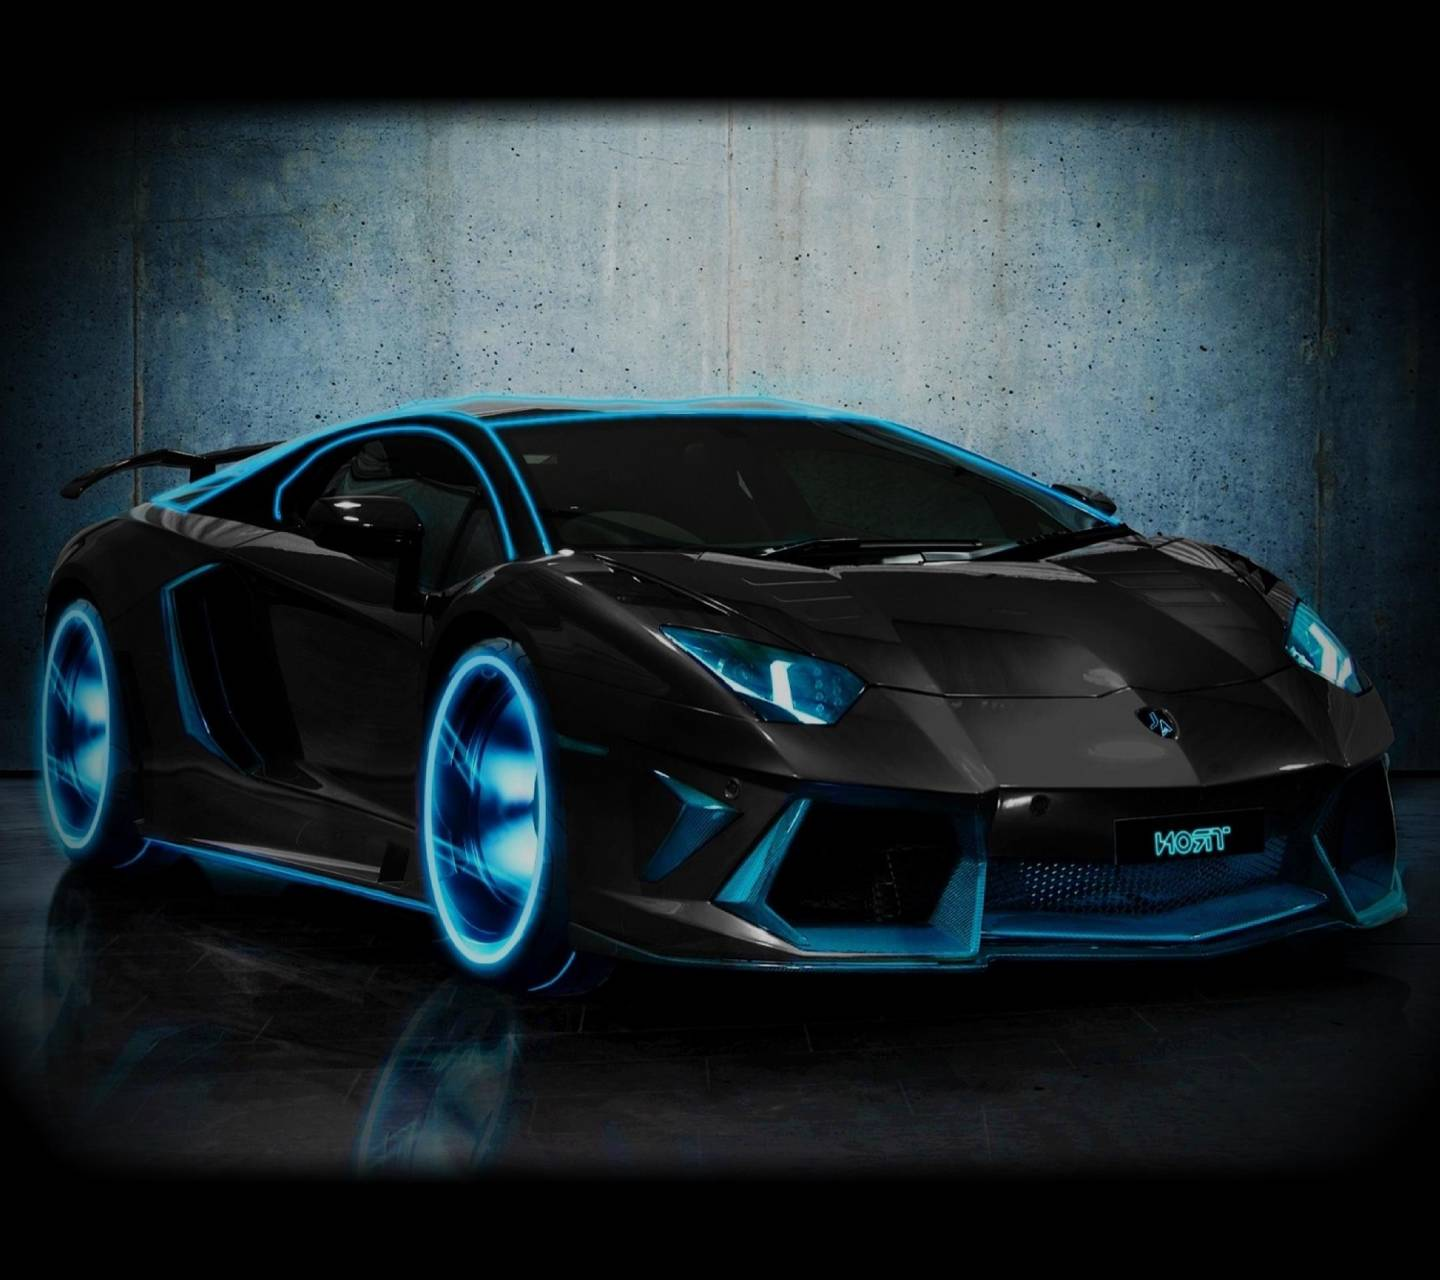 Lamborghini Neon Wallpaper By Konig 1b Free On Zedge